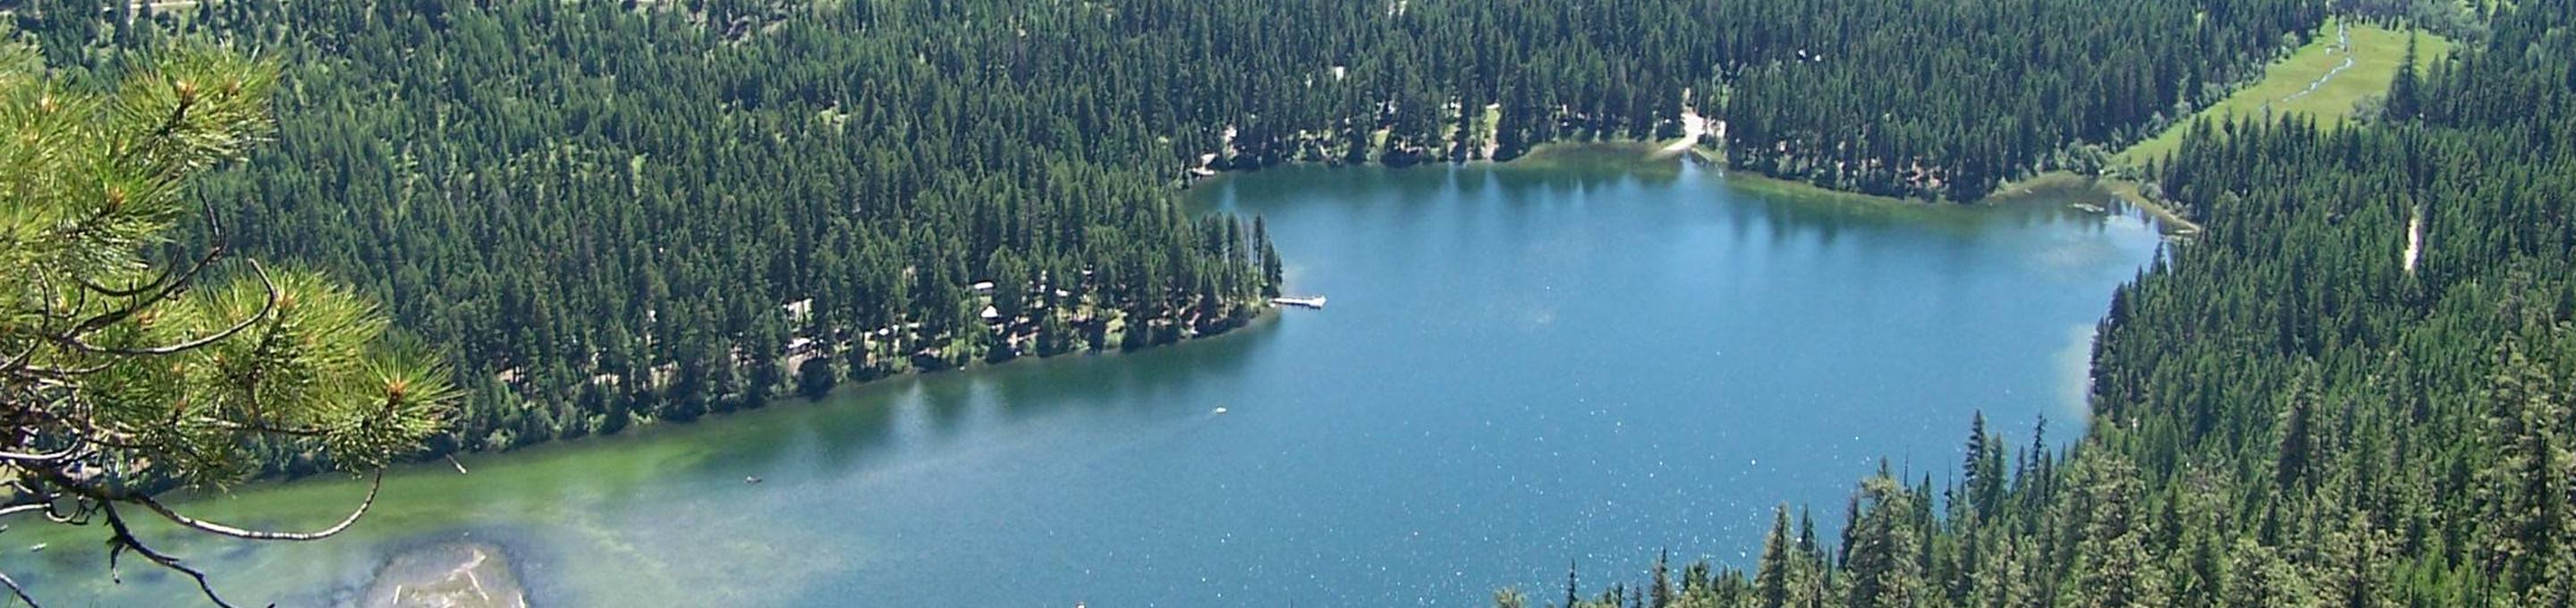 Aerial view of flat lake reflecting forested surroundings.Aerial view of Bonaparte Lake